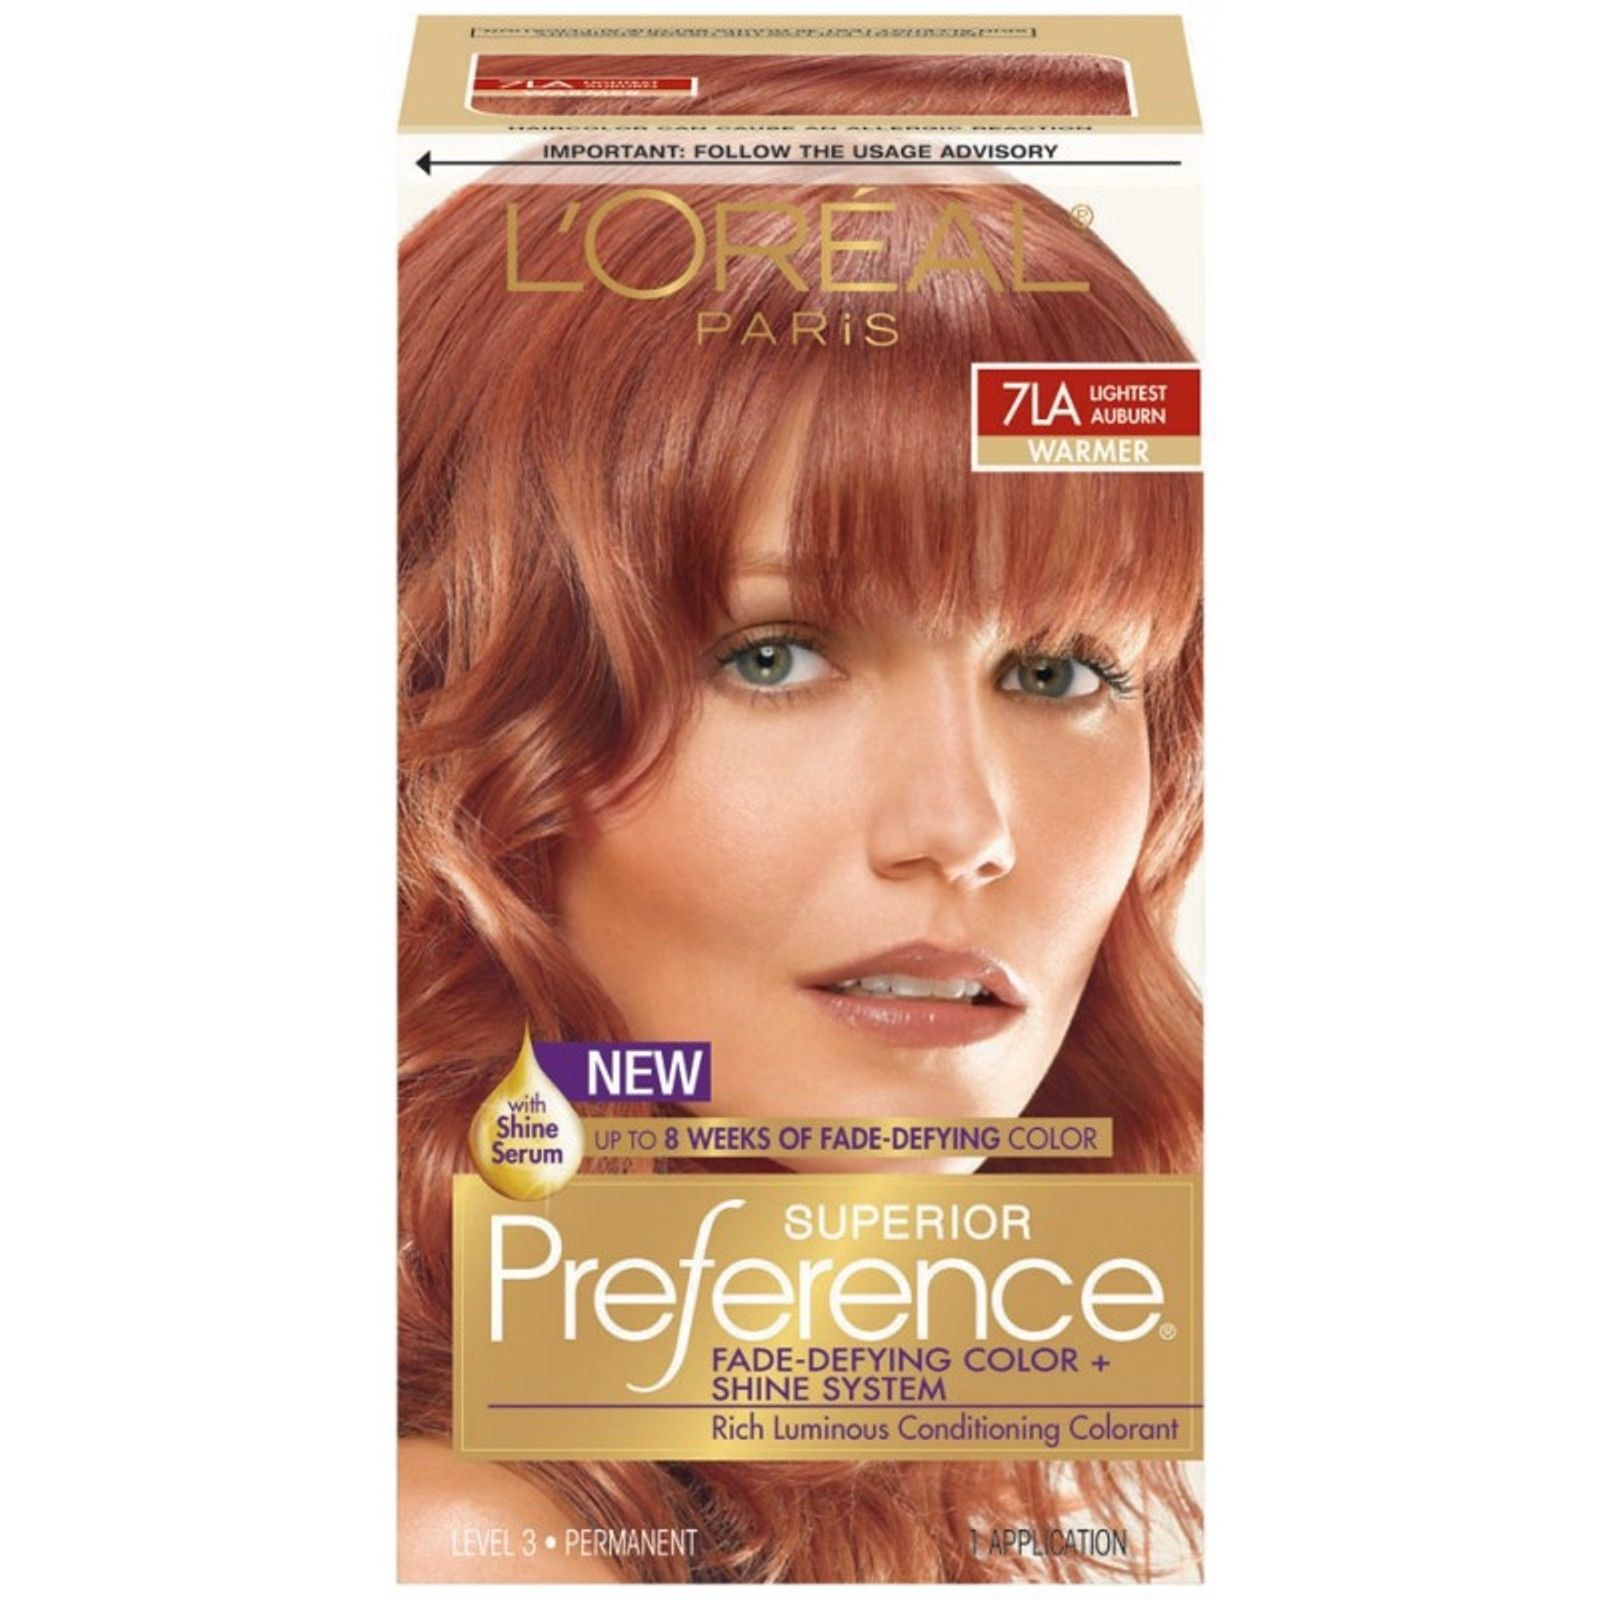 Httpebayitmloreal preference hair color 7la on the page you see beautiful pictures on the theme feria red hair color nvjuhfo Images